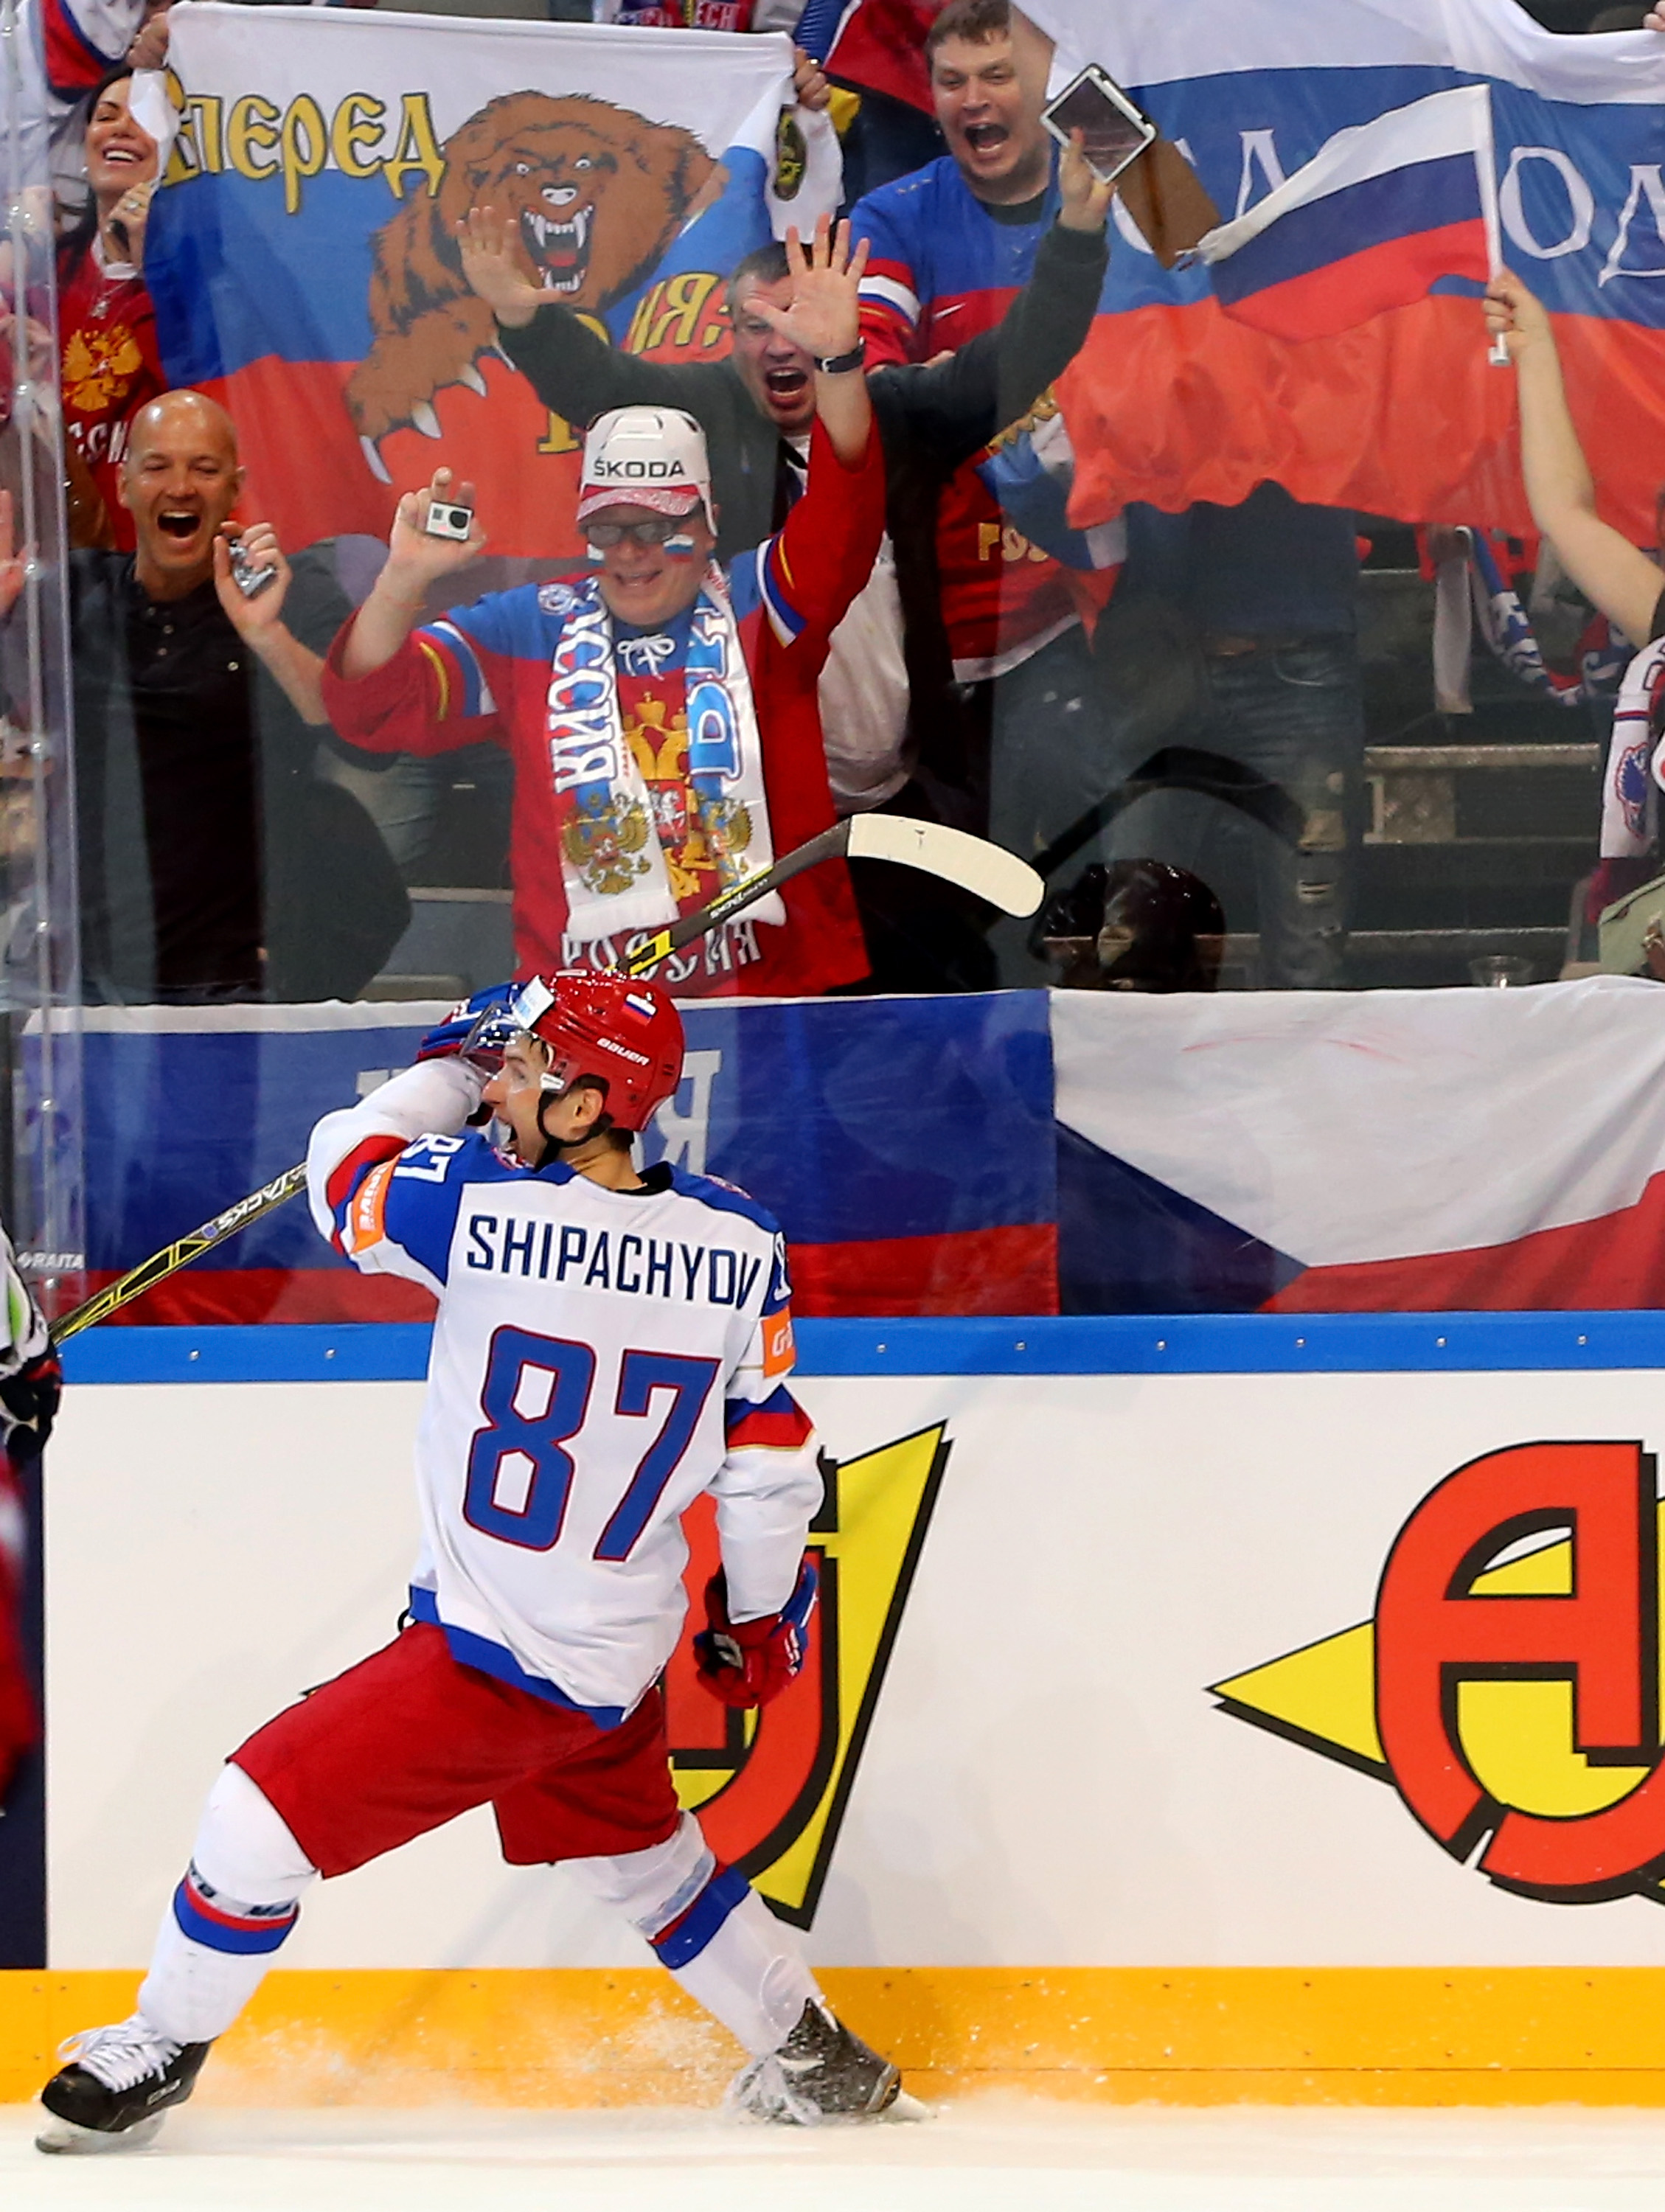 KHL: The Habs Are Reportedly Interested In Signing Russian League Star Vadim Shipachyov